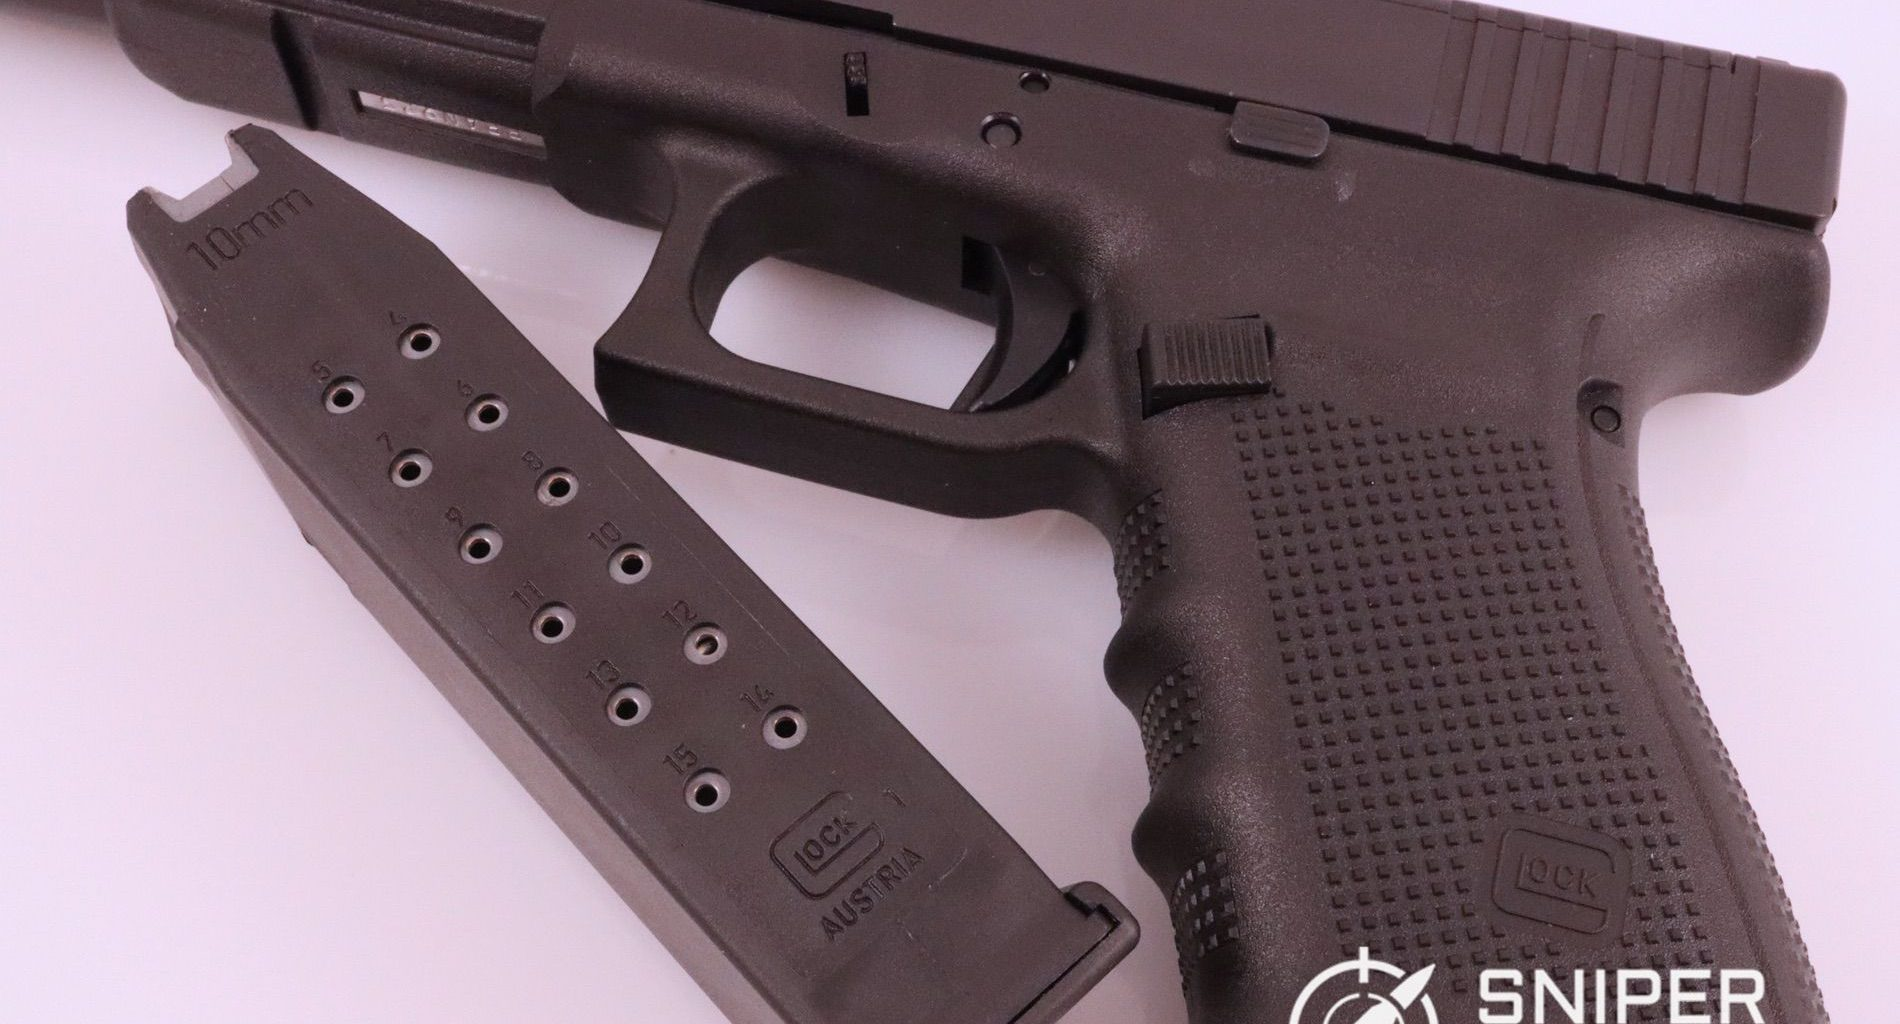 The standard capacity Glock 40 magazine holds 15 rounds, with a 16th round in the chamber.